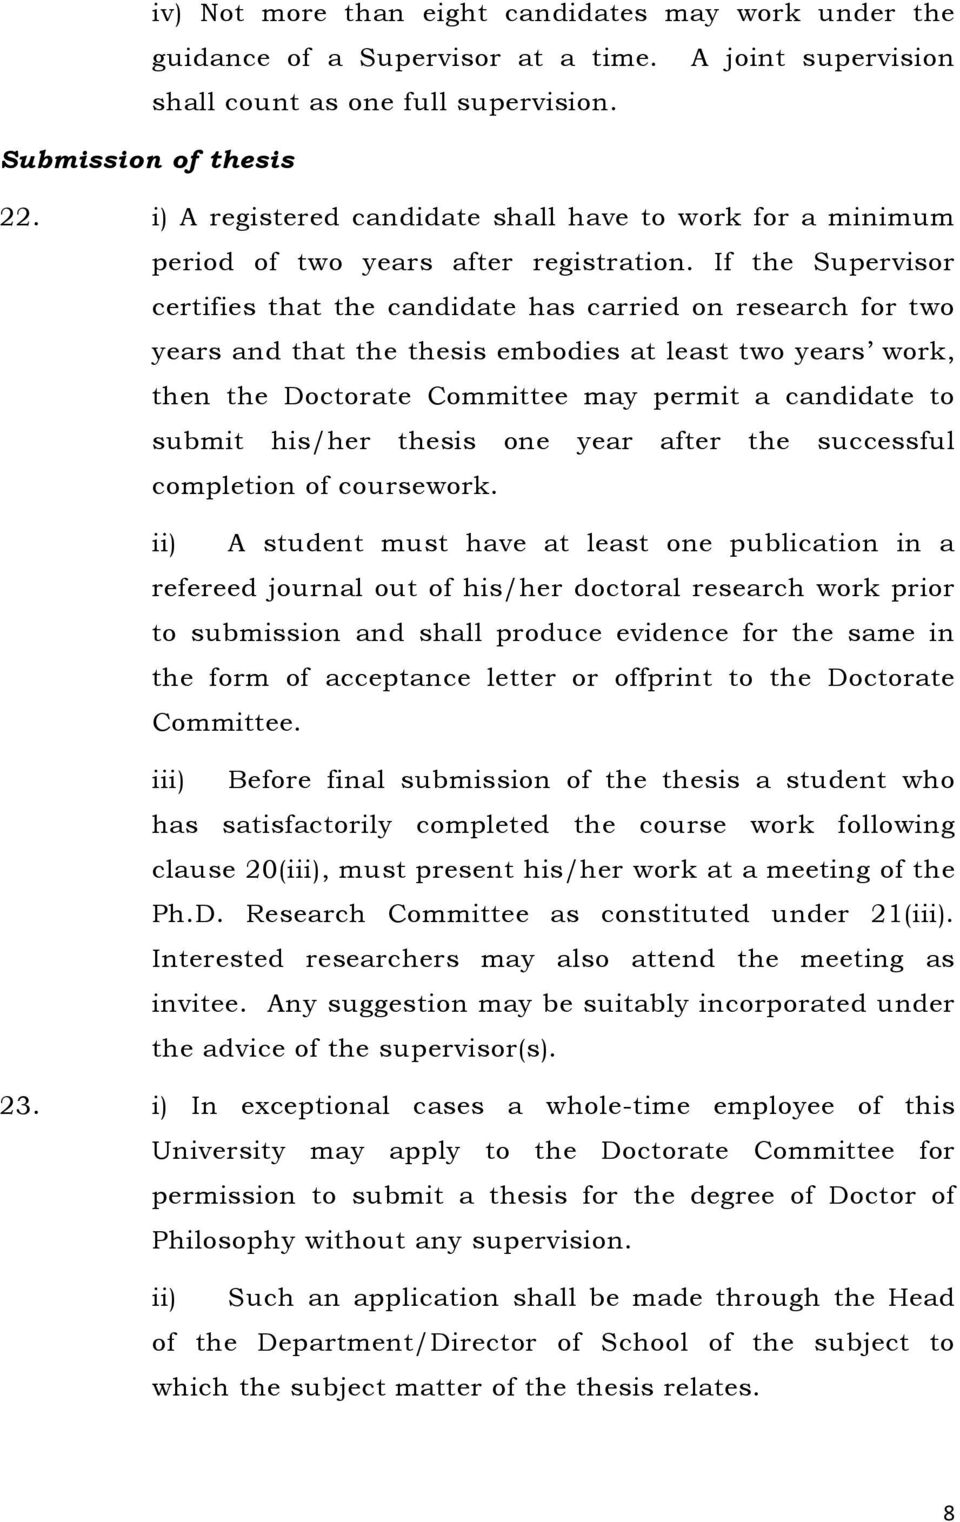 If the Supervisor certifies that the candidate has carried on research for two years and that the thesis embodies at least two years work, then the Doctorate Committee may permit a candidate to